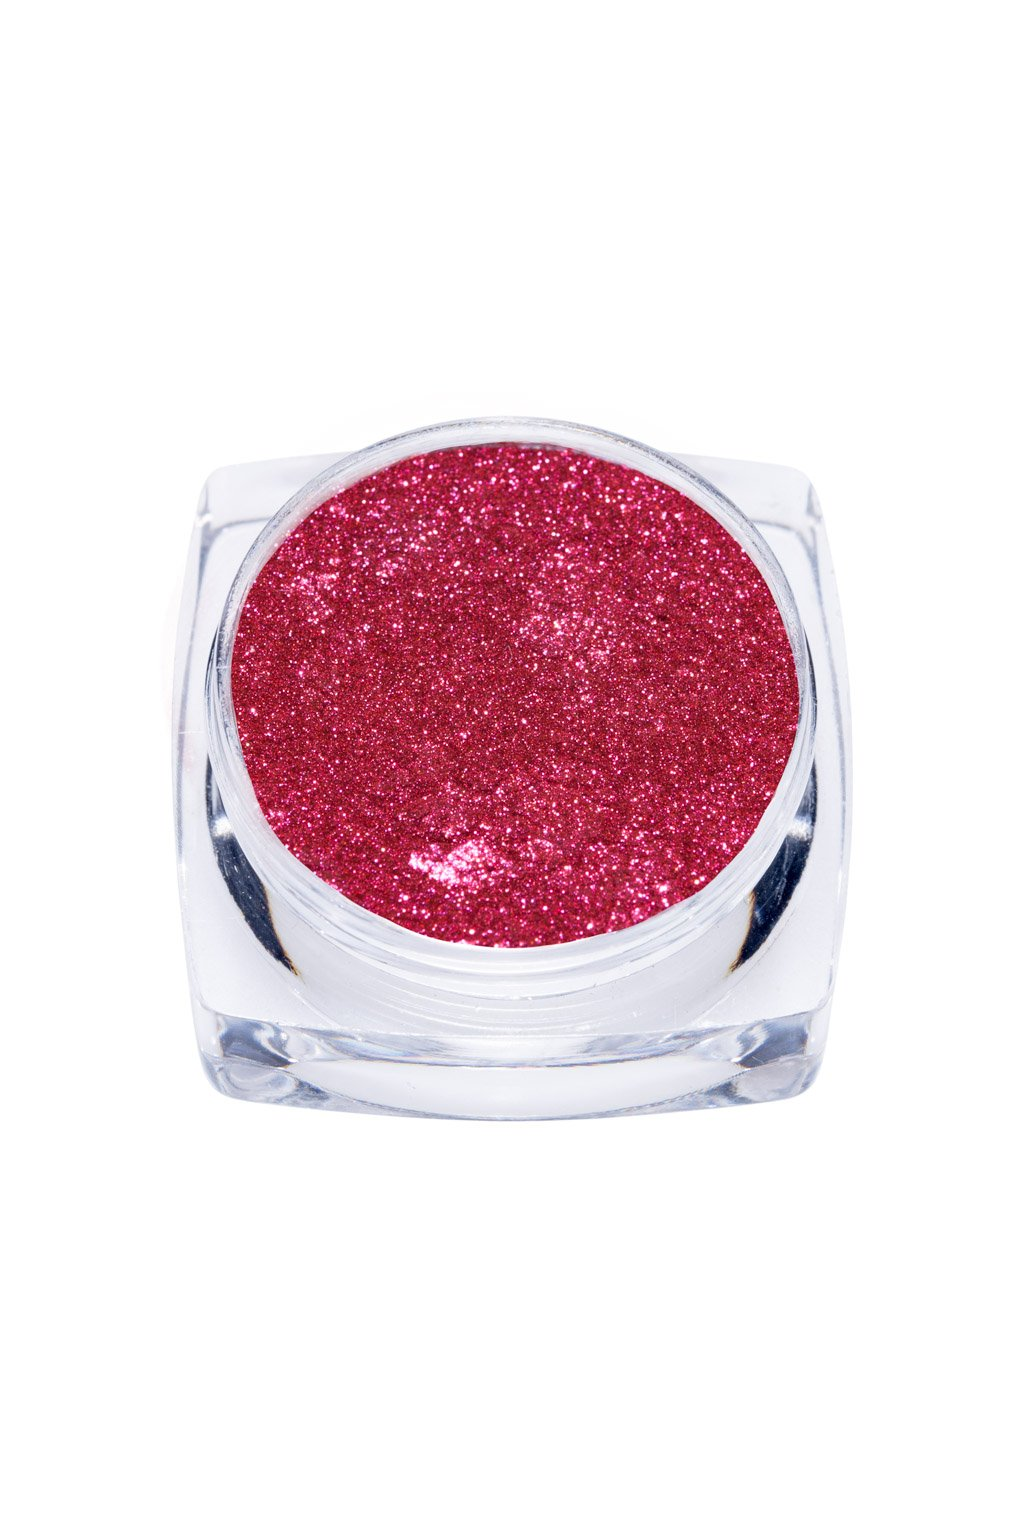 23873 pigment scarlet red